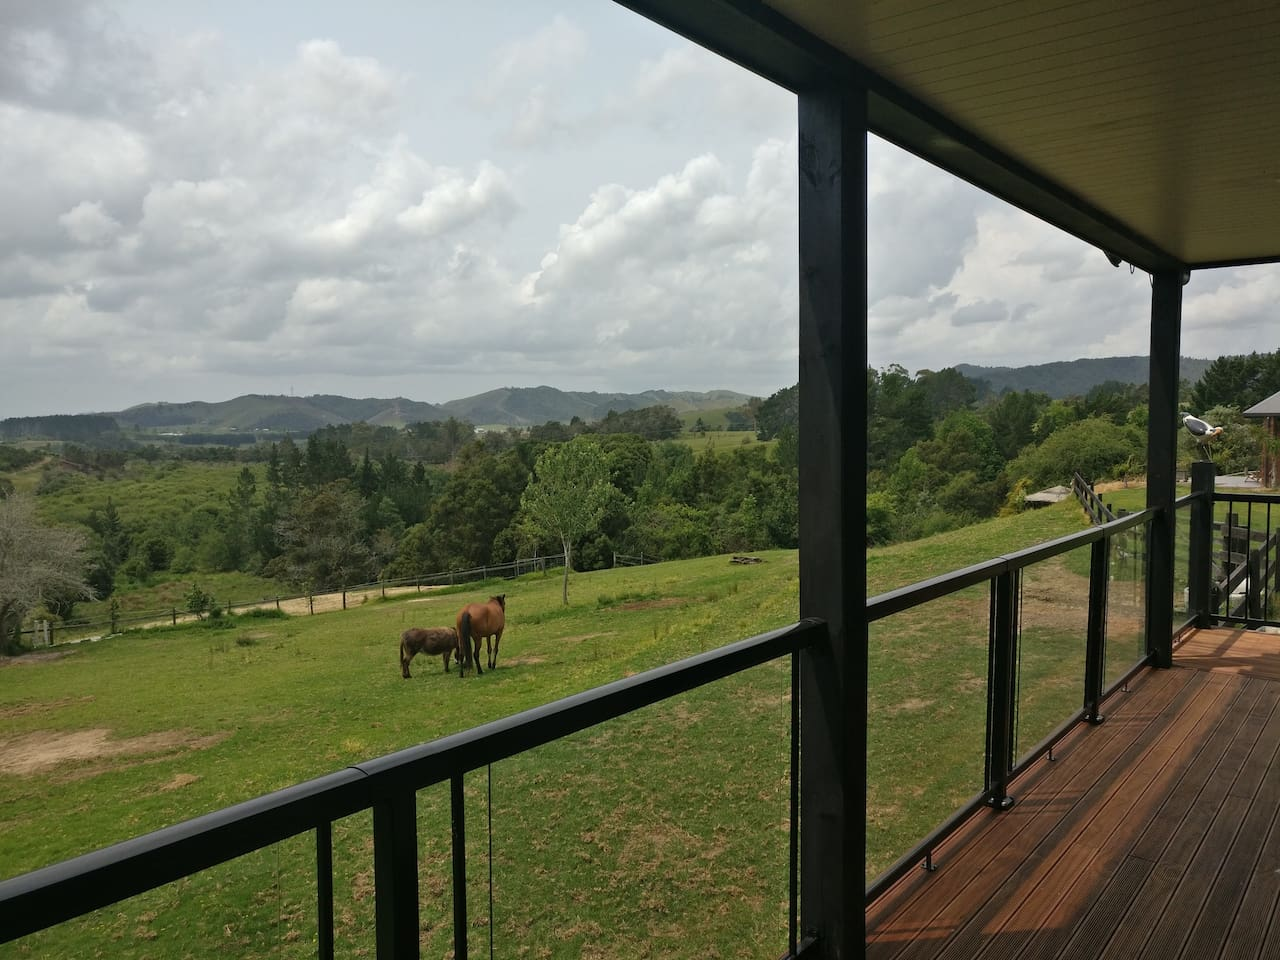 Imagine breakfast/dinner on the deck, rural views with friendly animals.